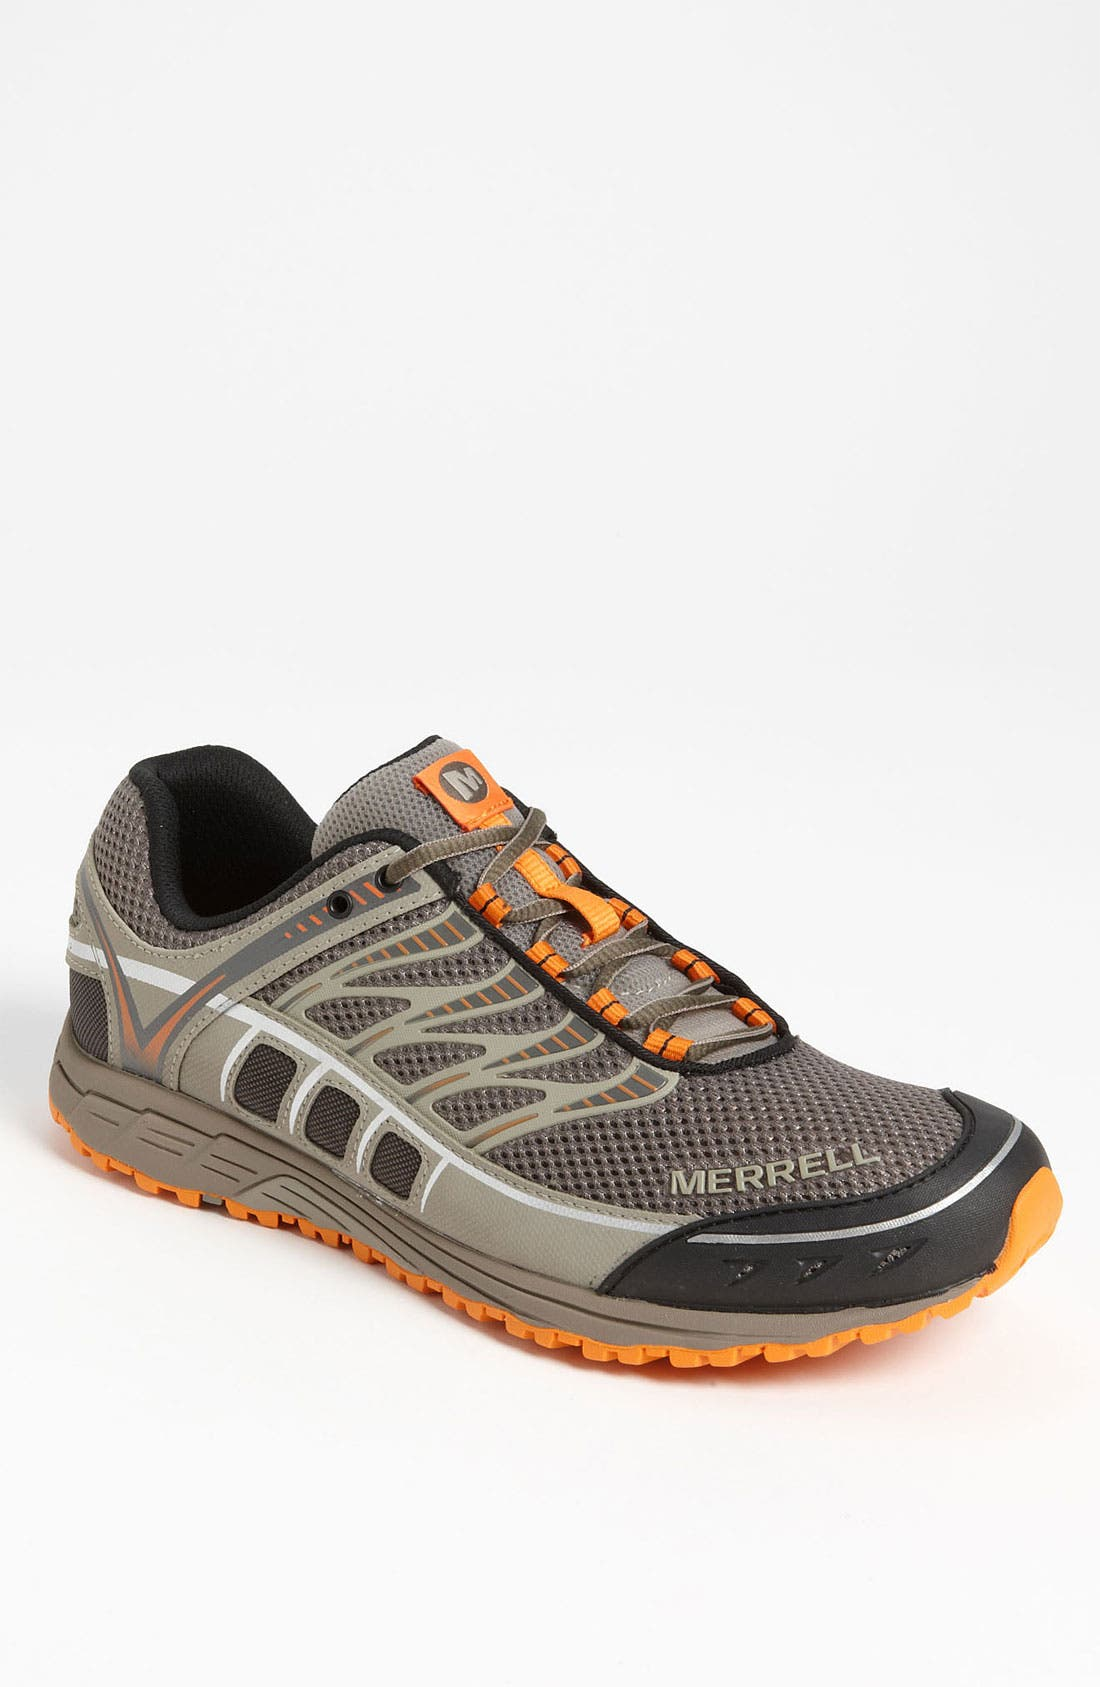 Alternate Image 1 Selected - Merrell 'Mix Master Tuff' Hiking Shoe (Men)